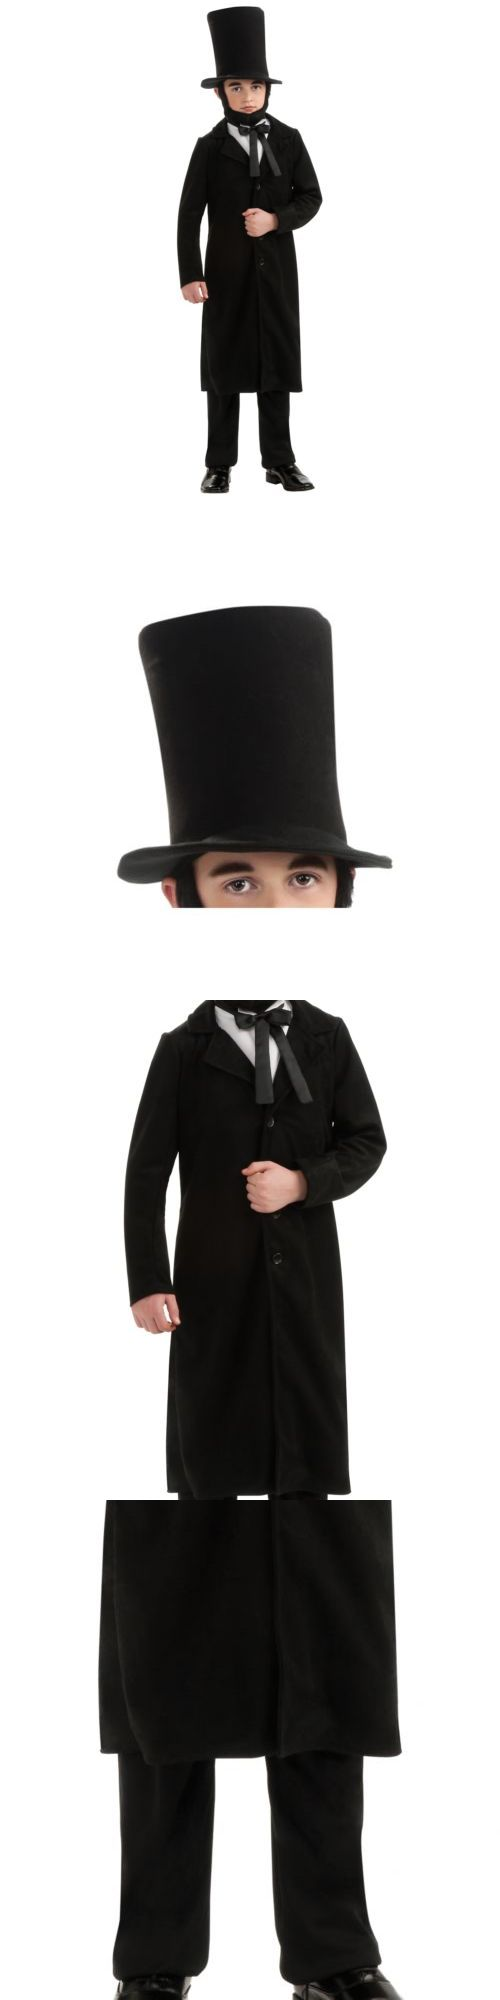 Boys 80913: Abraham Lincoln Costume Halloween Fancy Dress -> BUY IT NOW ONLY: $31.09 on eBay!